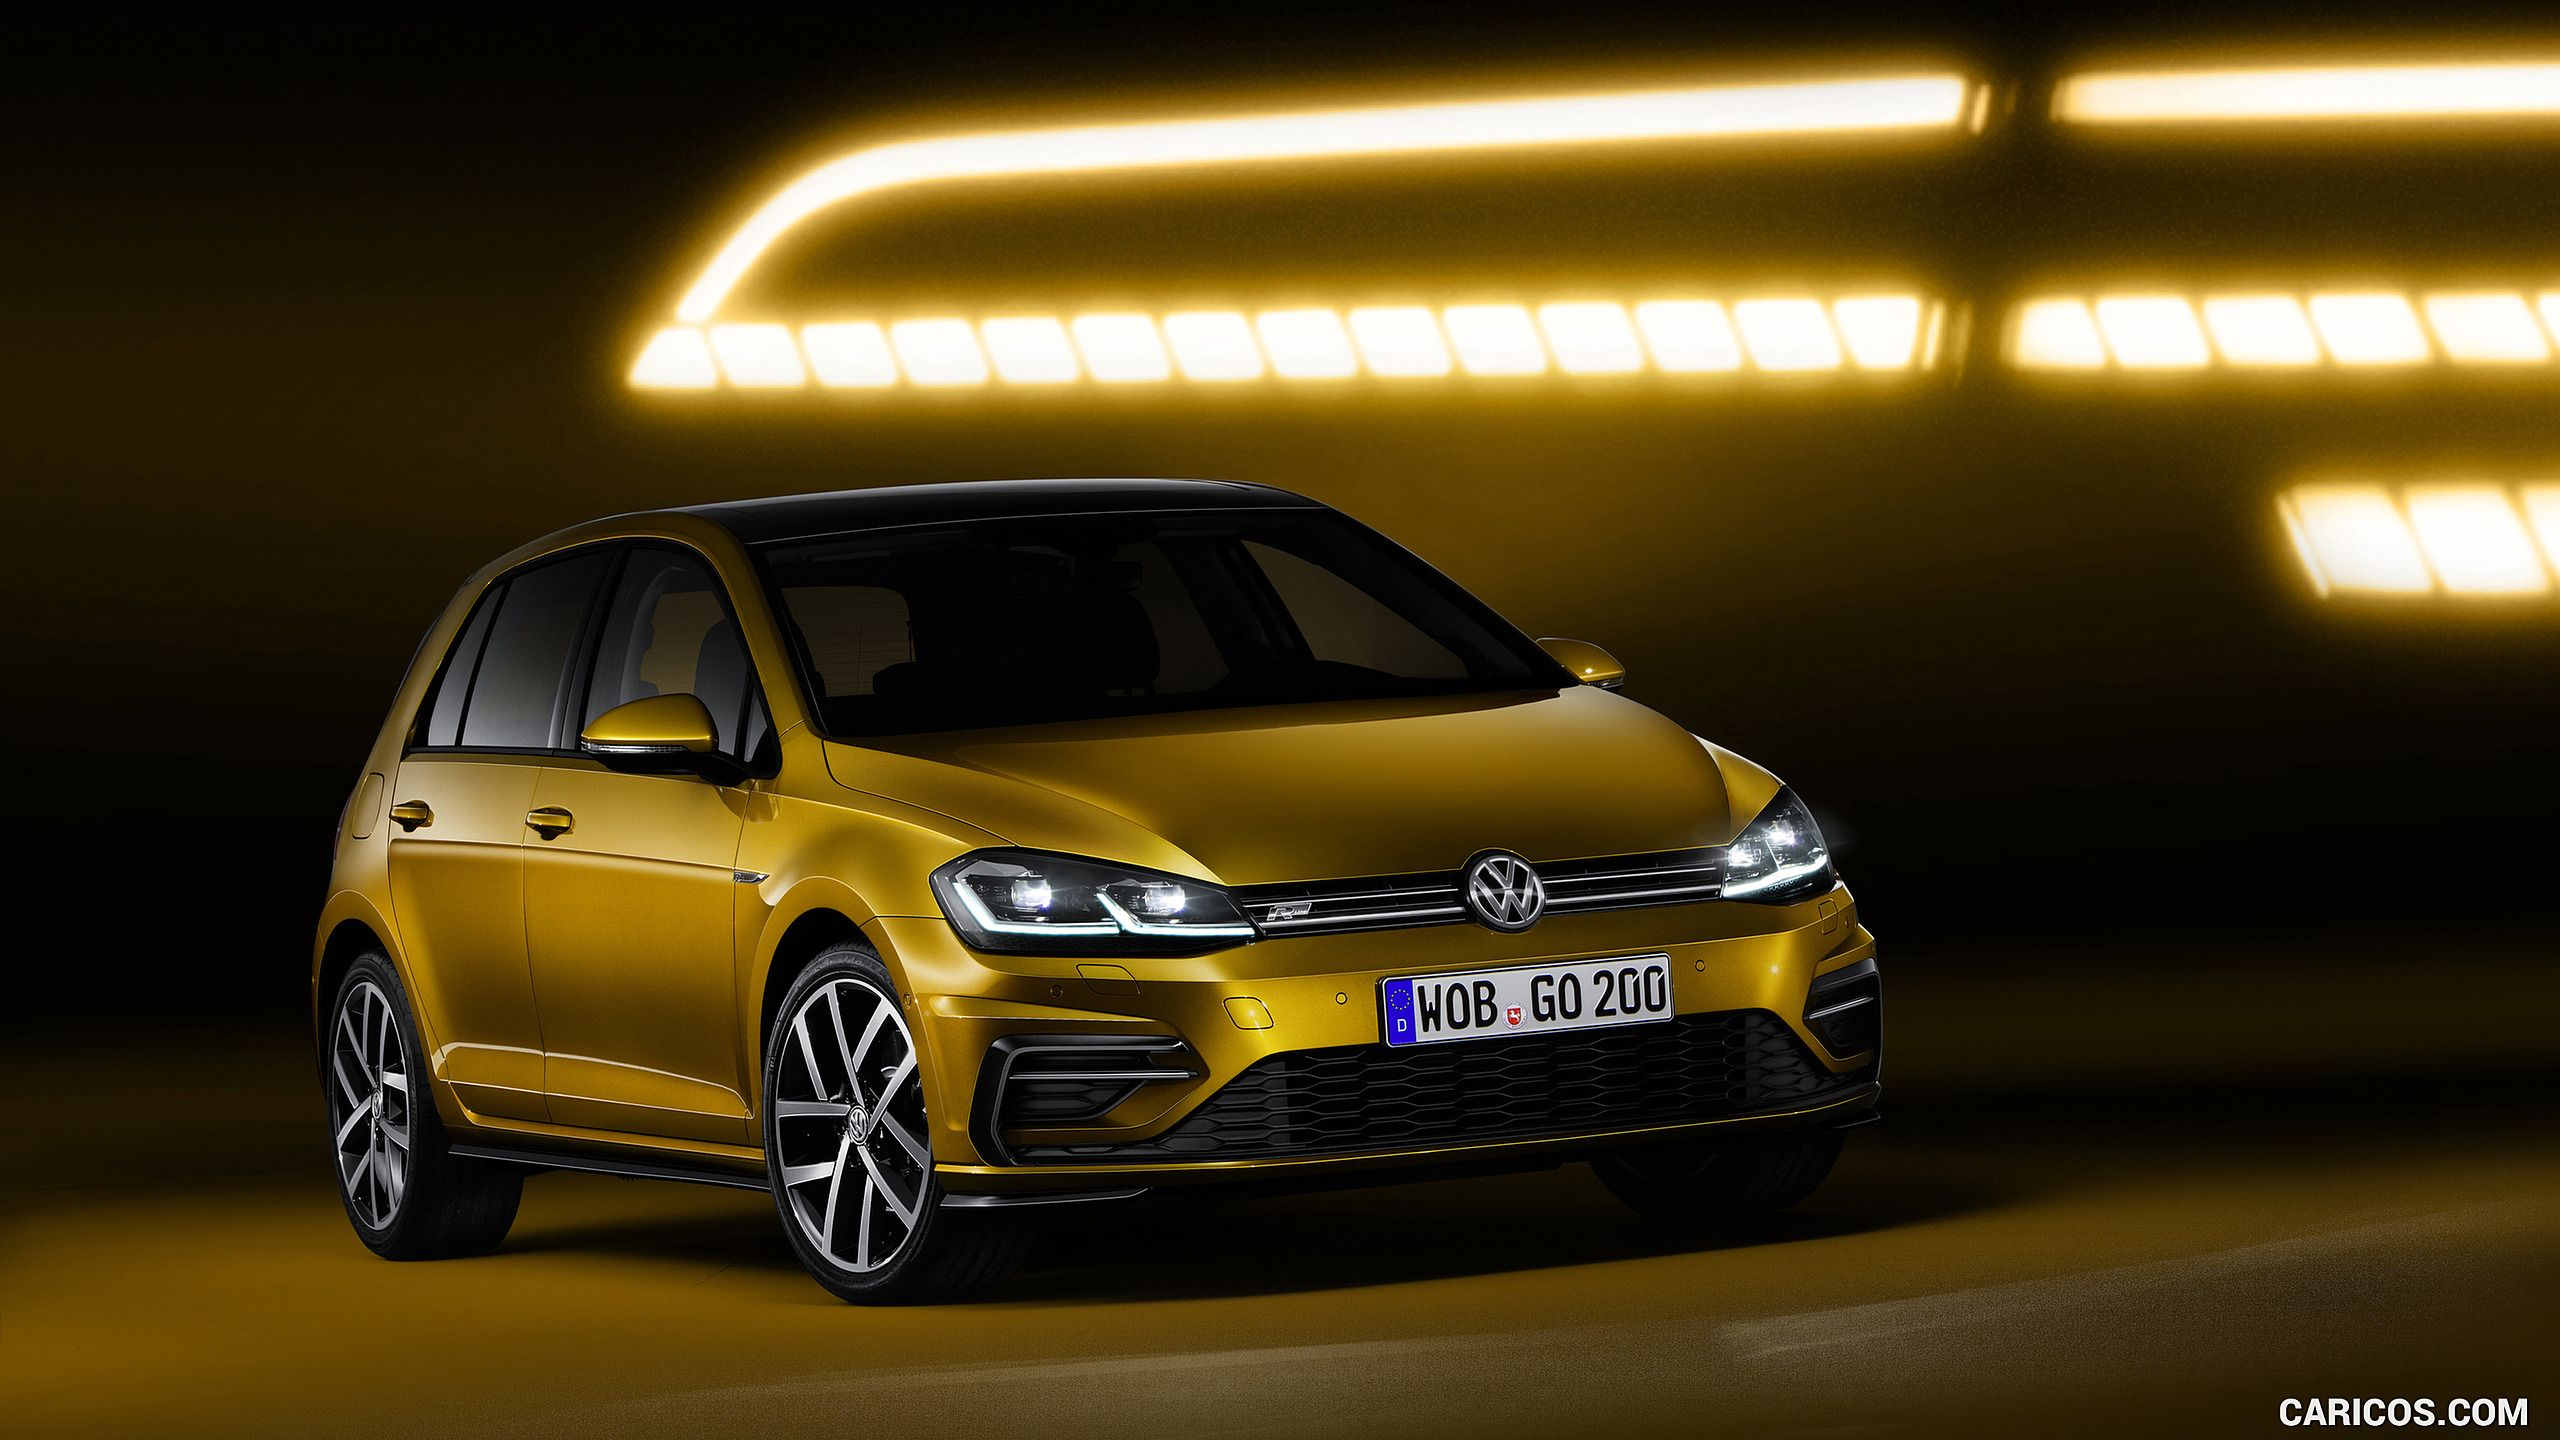 2017 volkswagen golf 7 facelift wallpaper volkswagen golf pinterest volkswagen golf. Black Bedroom Furniture Sets. Home Design Ideas